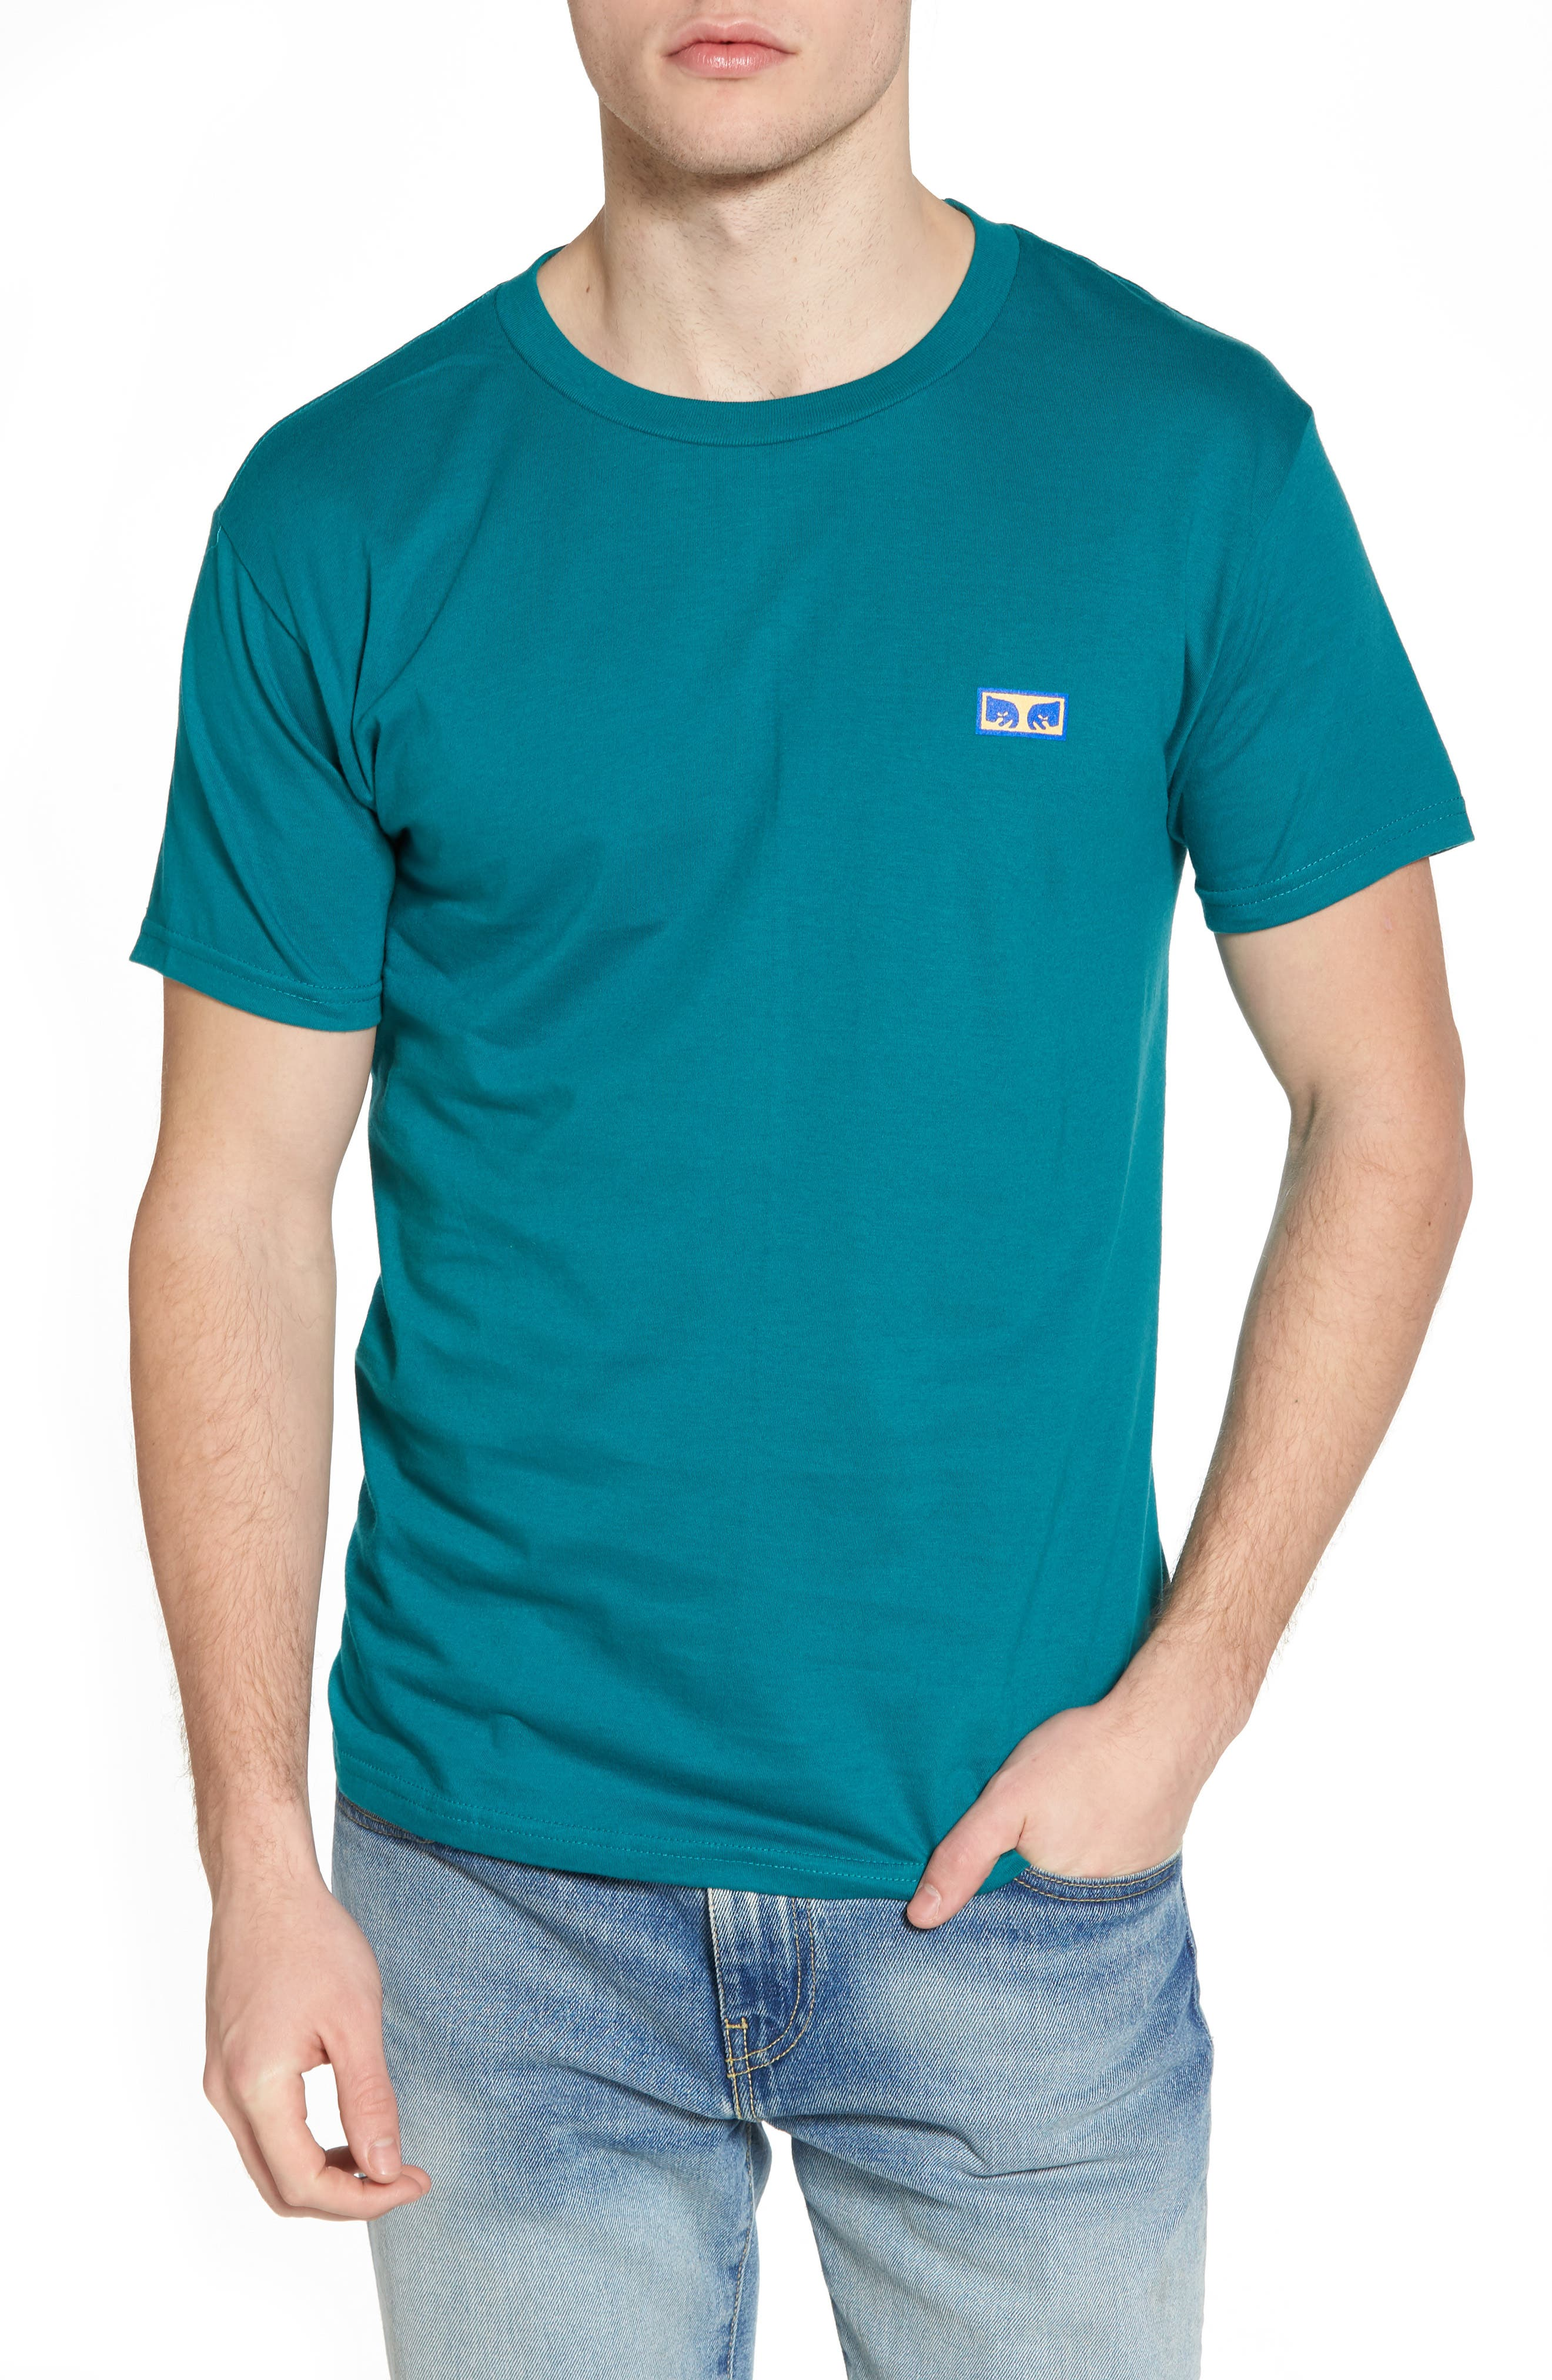 Flashback Graphic T-Shirt,                         Main,                         color, Teal